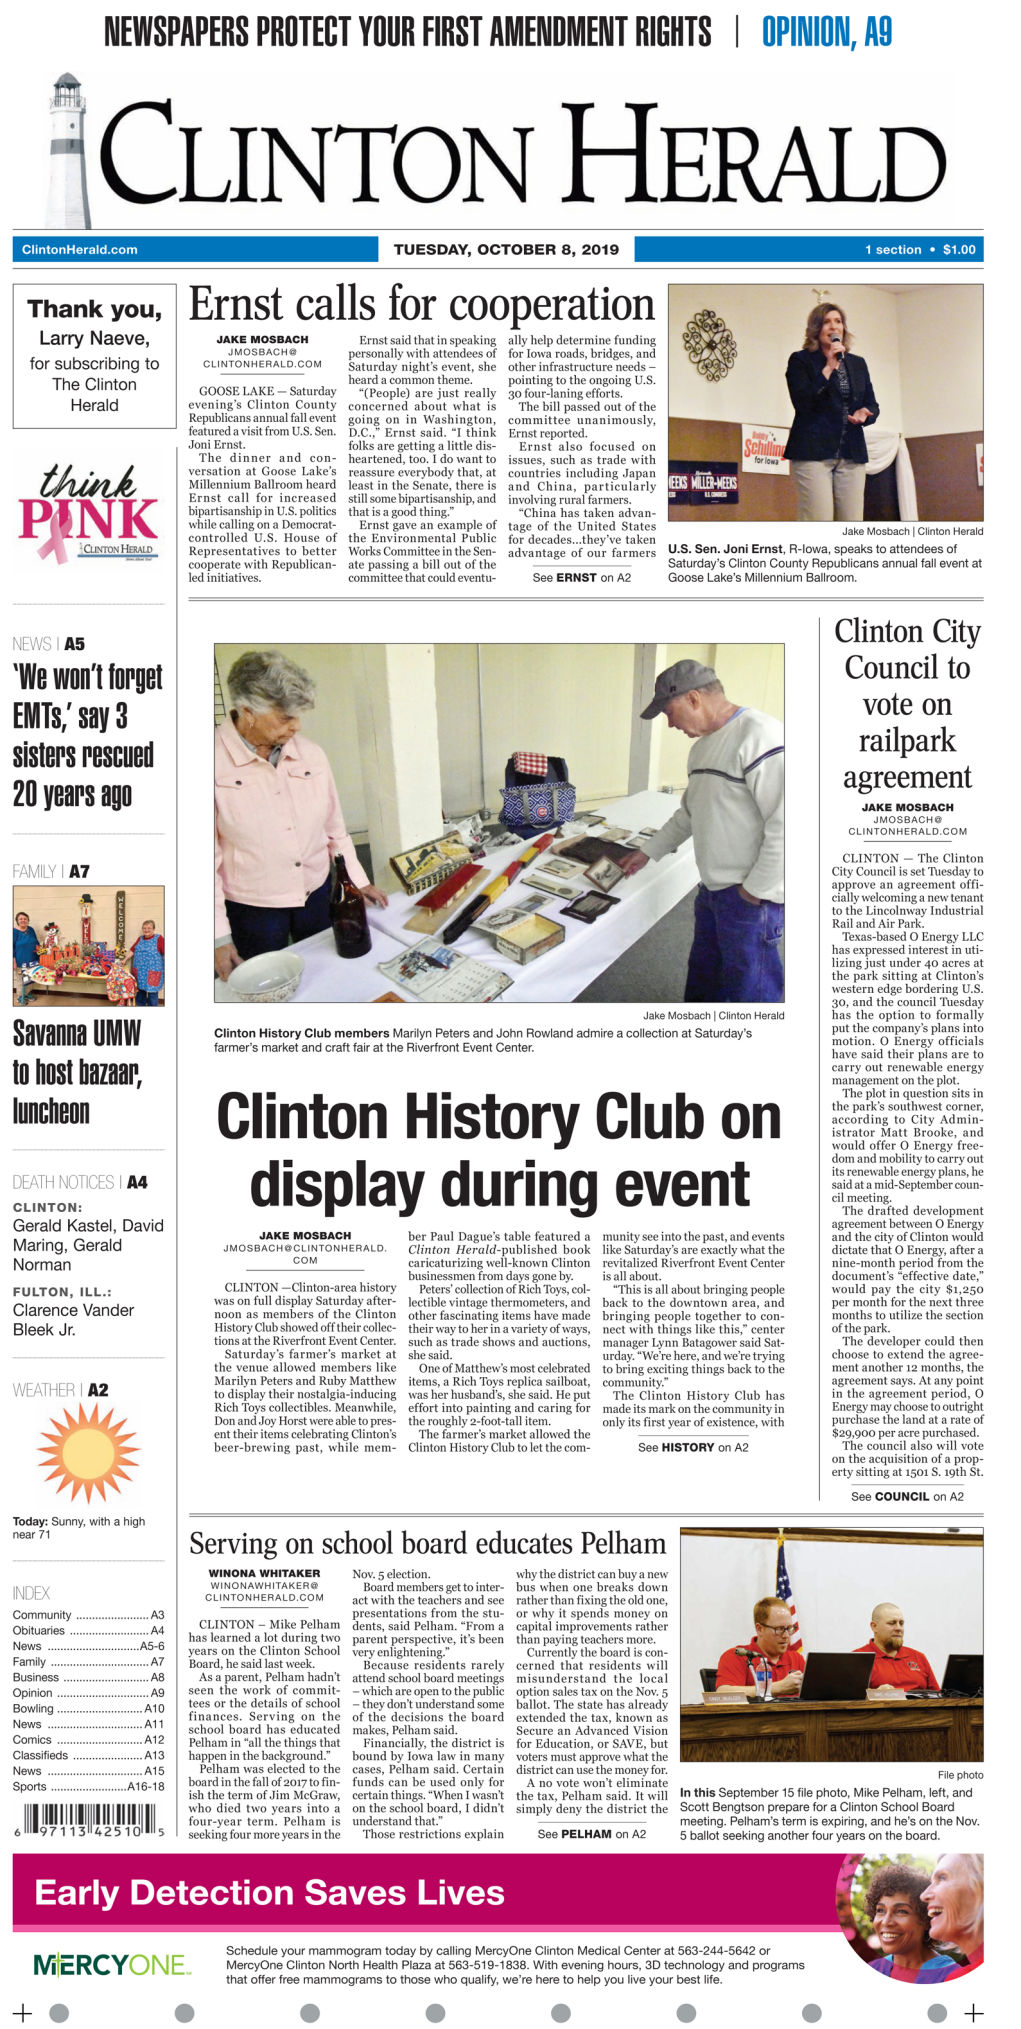 Front page for Oct. 8, 2018